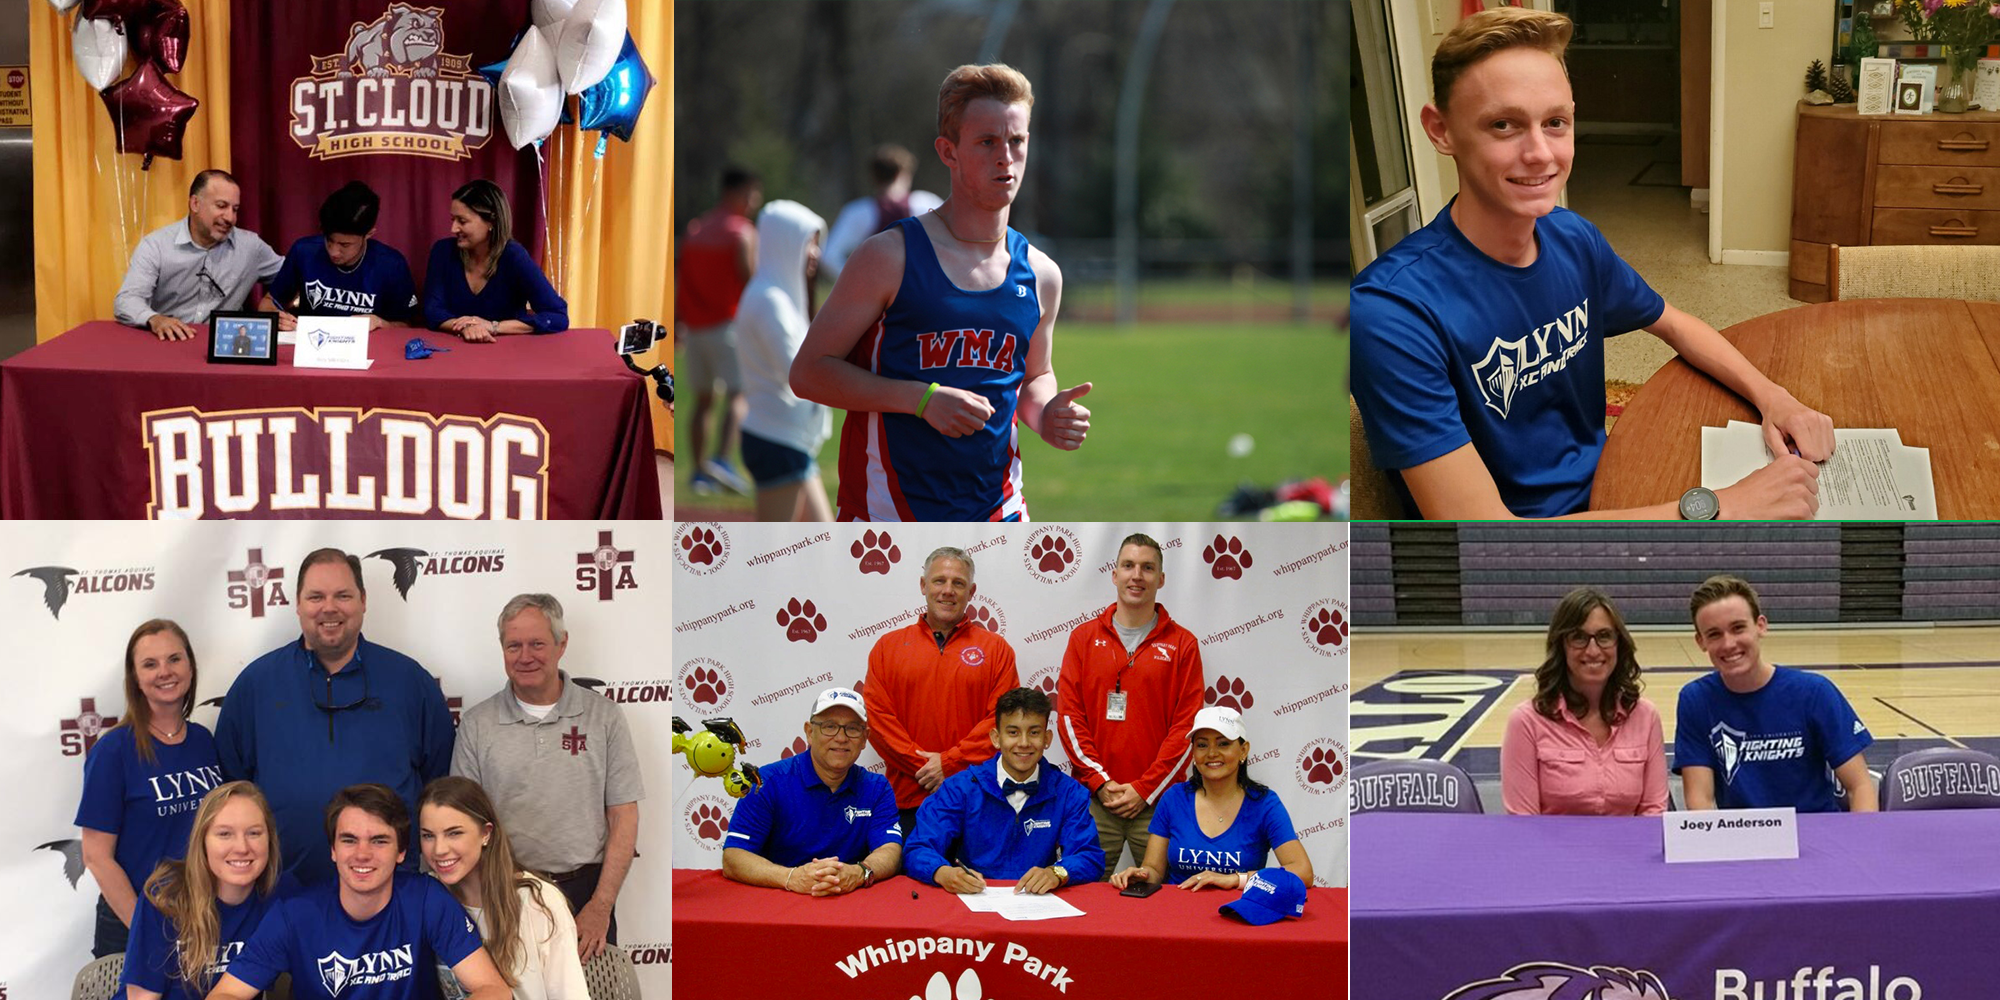 Men's Cross Country/Track Rolls Out 2019-20 Recruiting Class